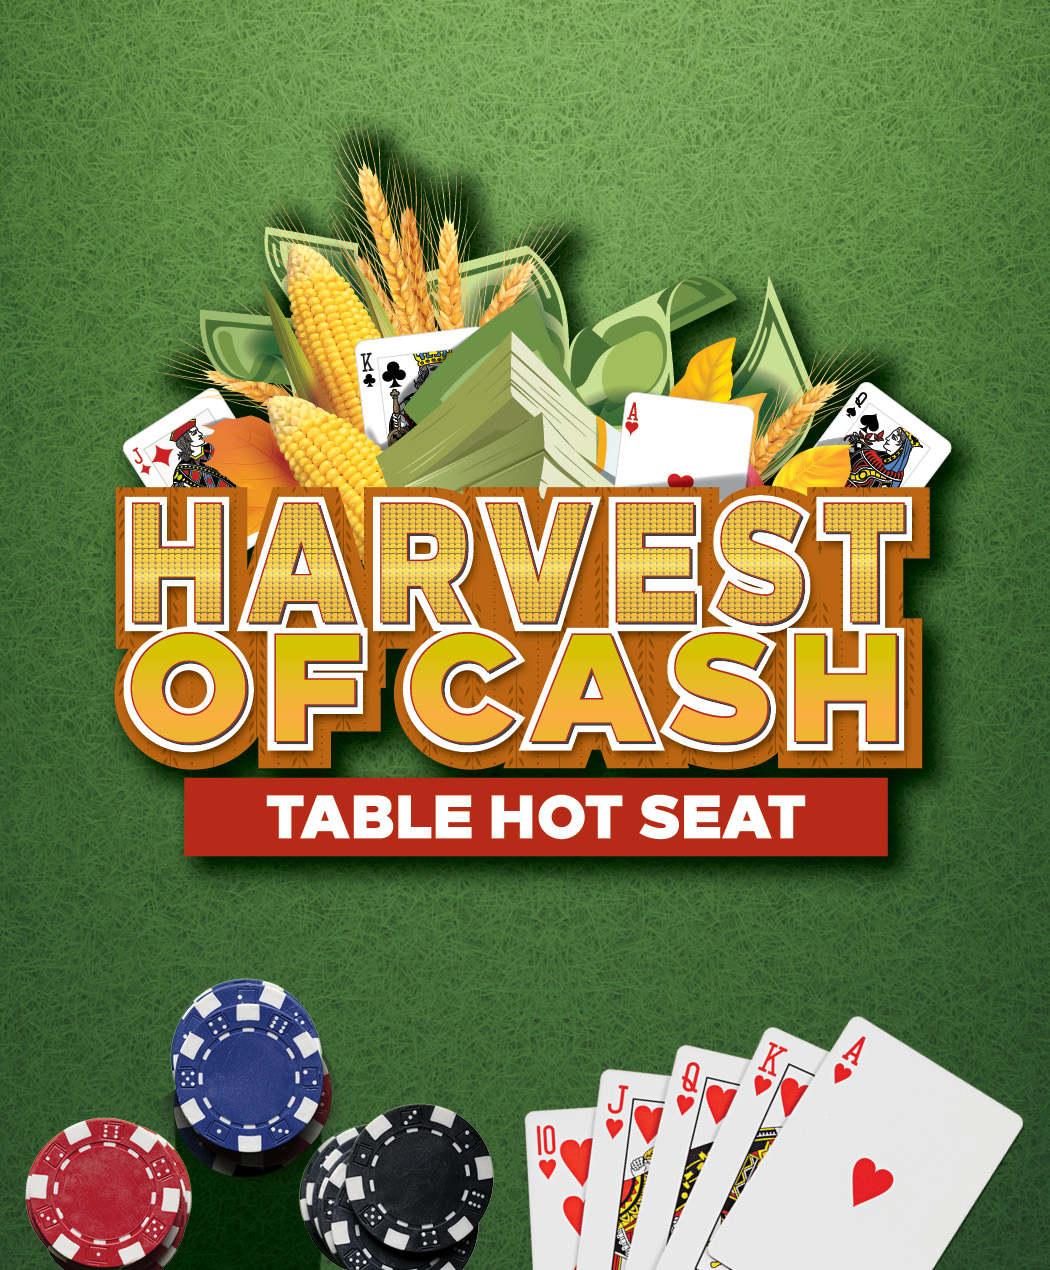 Harvest of Cash Table Hot Seat